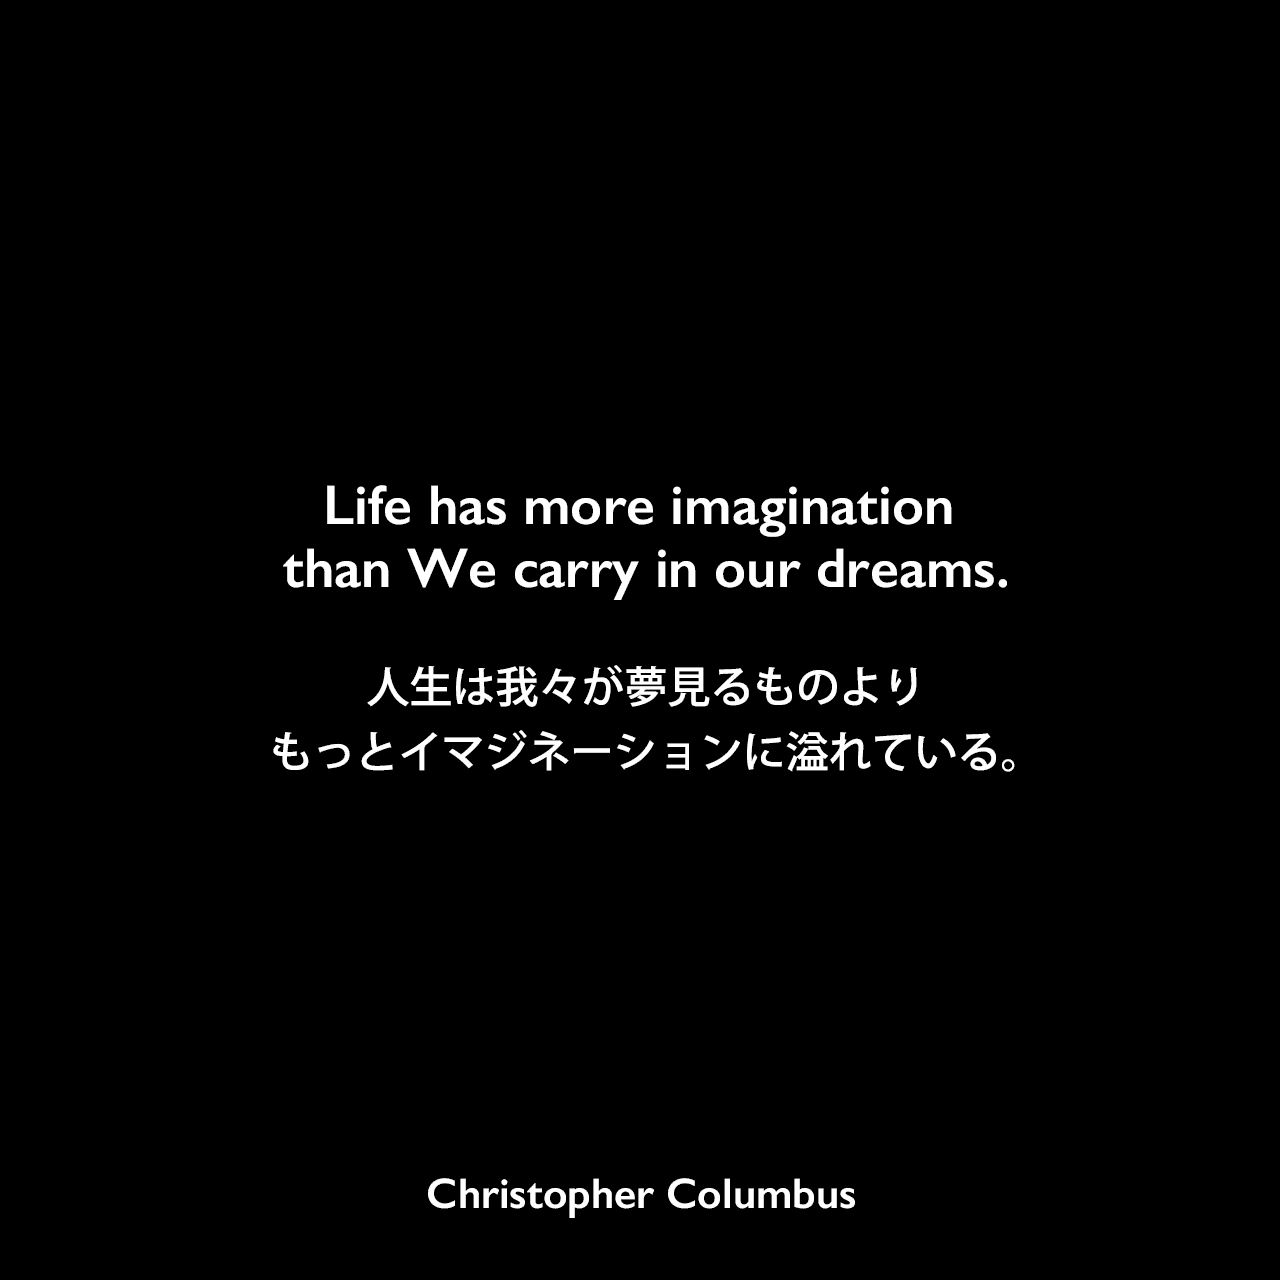 Life has more imagination than We carry in our dreams.人生は我々が夢見るものよりもっとイマジネーションに溢れている。Christopher Columbus